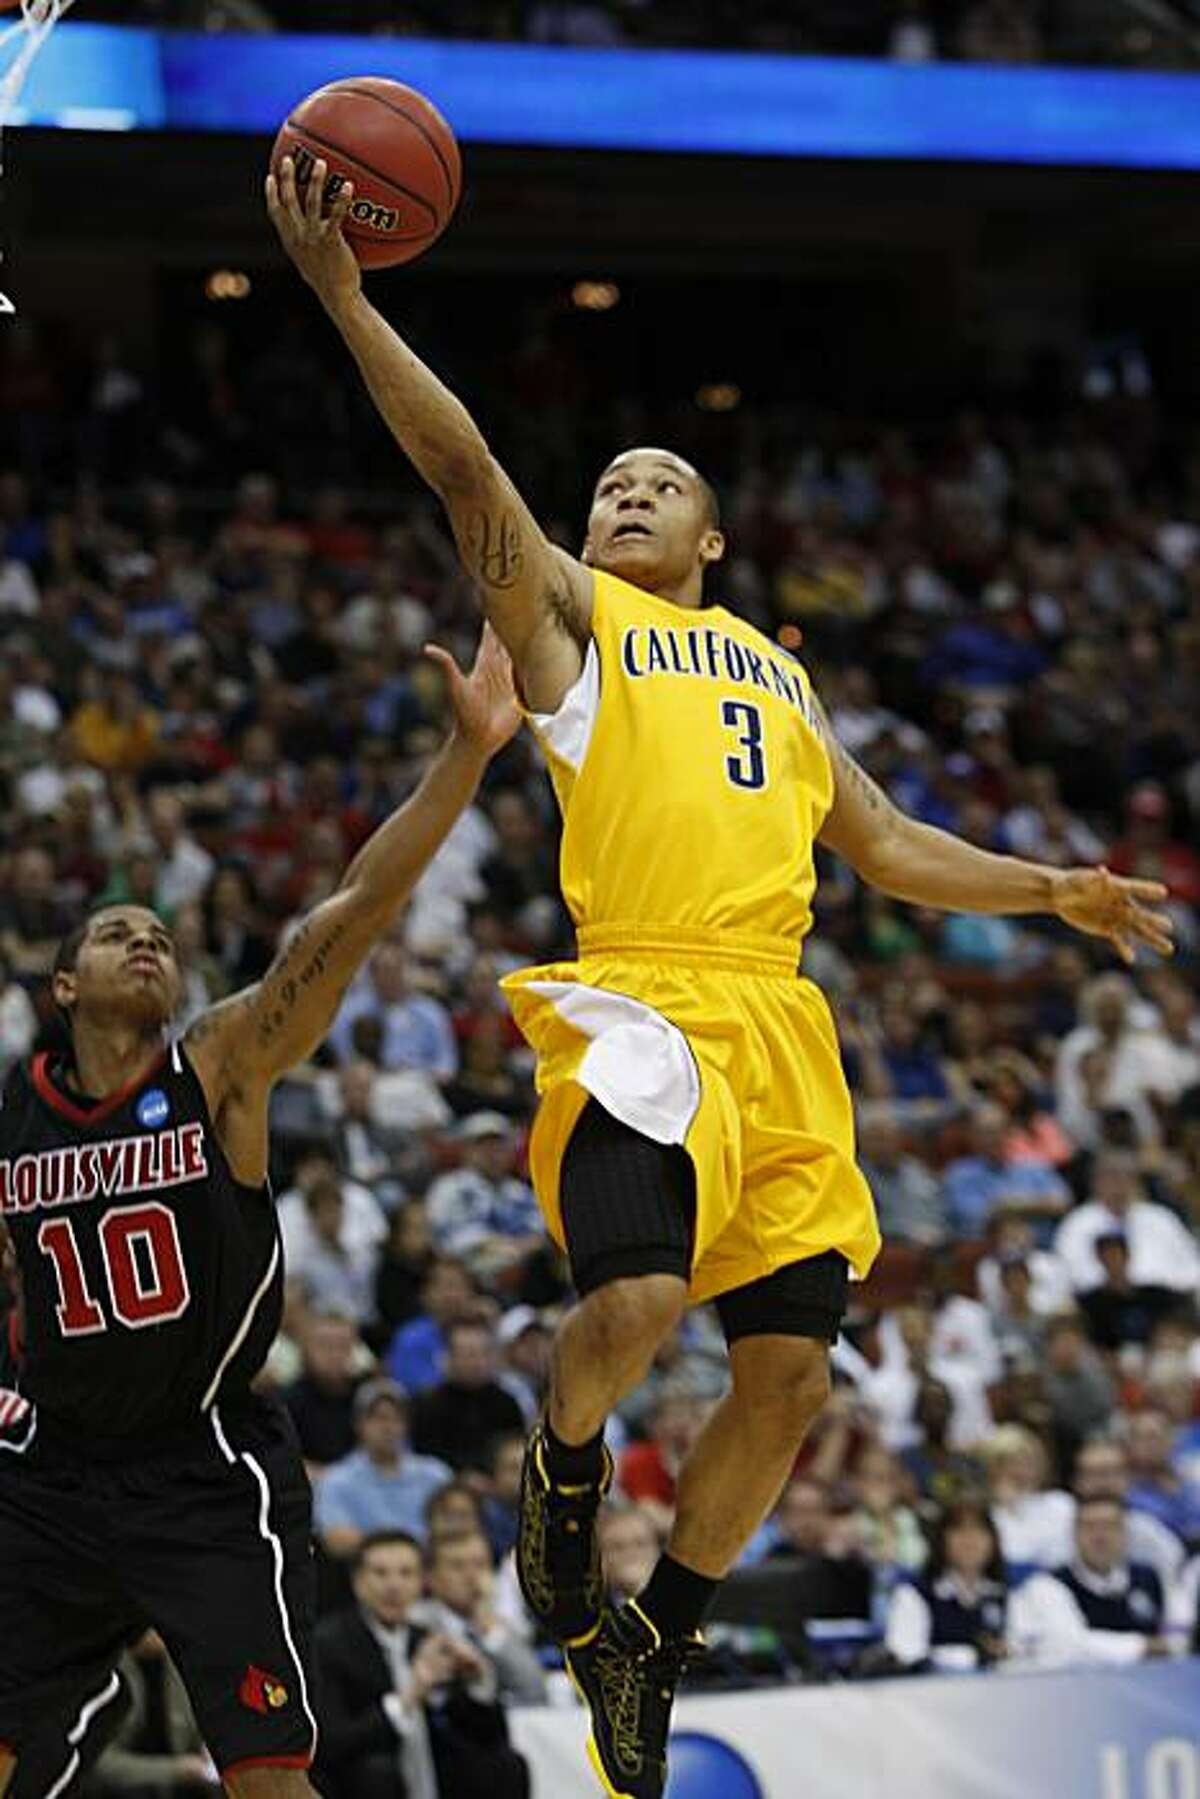 California's Jerome Randle (3) goes for the basket as Louisville's Edgar Sosa (10) defends during an NCAA first-round college basketball game in Jacksonville, Fla., Friday, March 19, 2010.